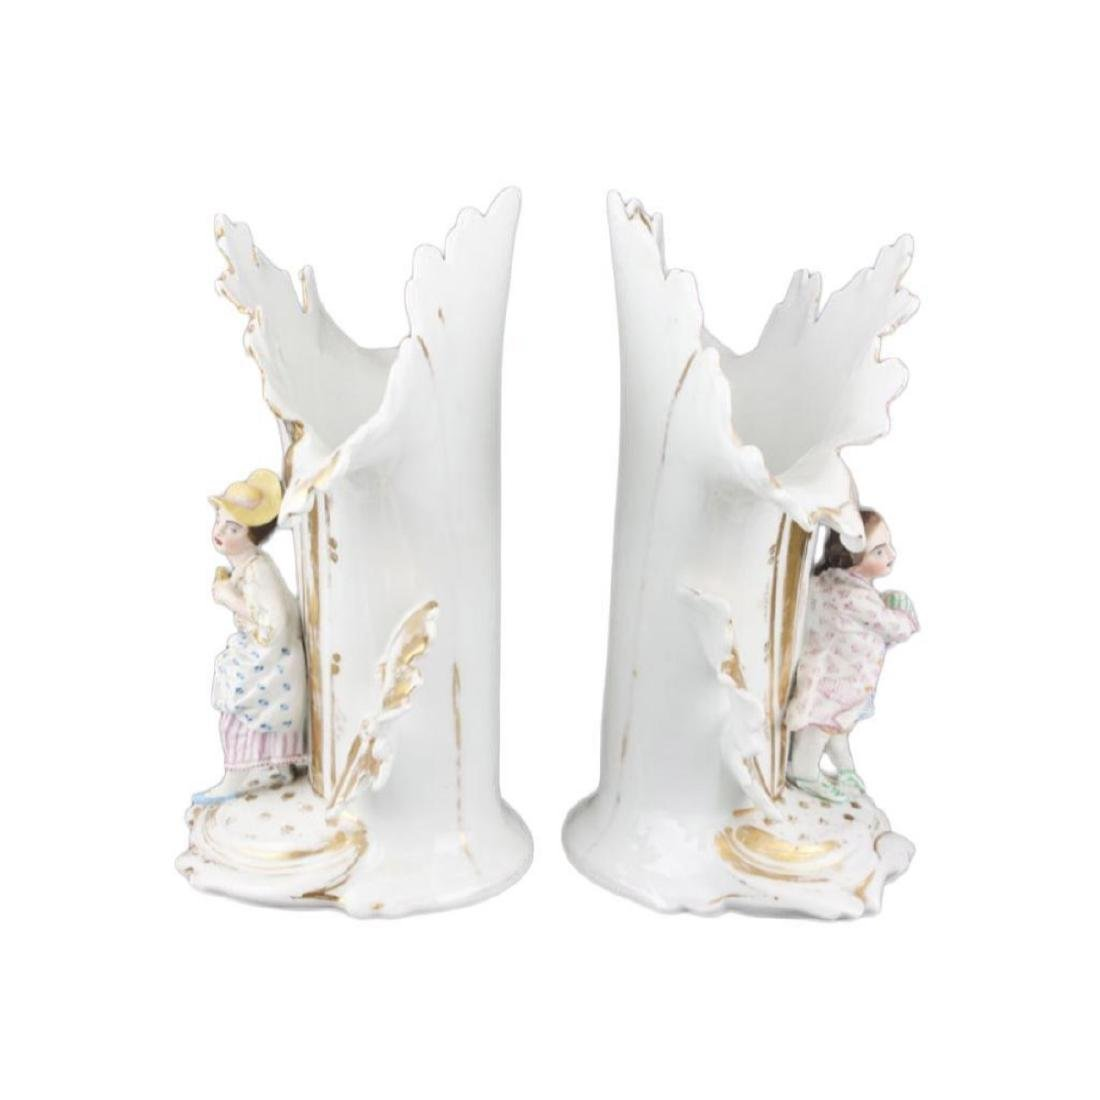 Pair of mid 19thc French Porcelain Flair Vases - 2